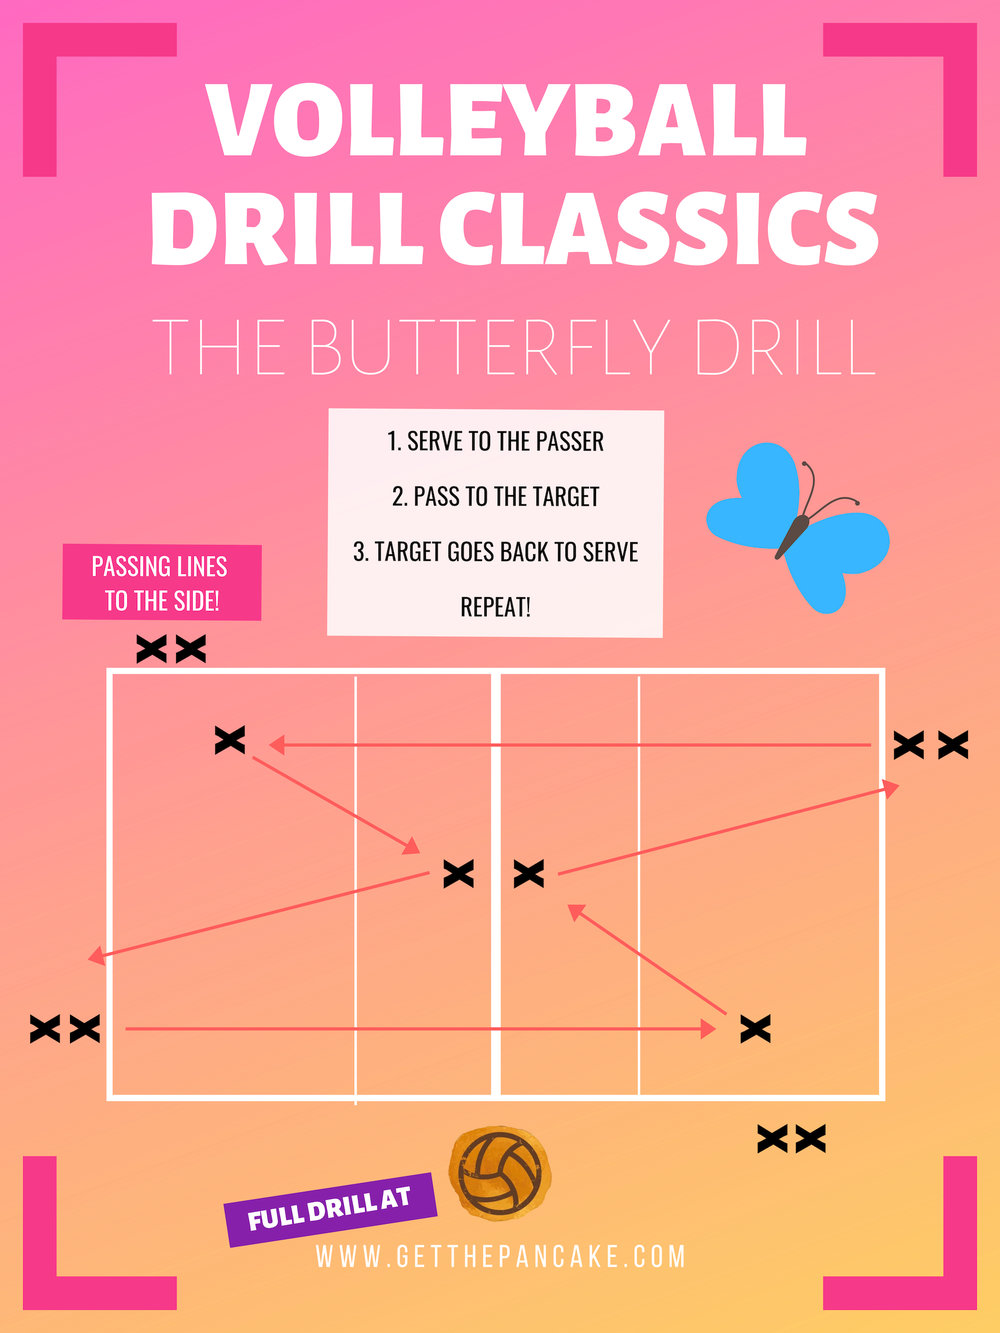 BUTTERFLY DRILL VOLLEYBALL DRILL GET THE PANCAKE.jpg